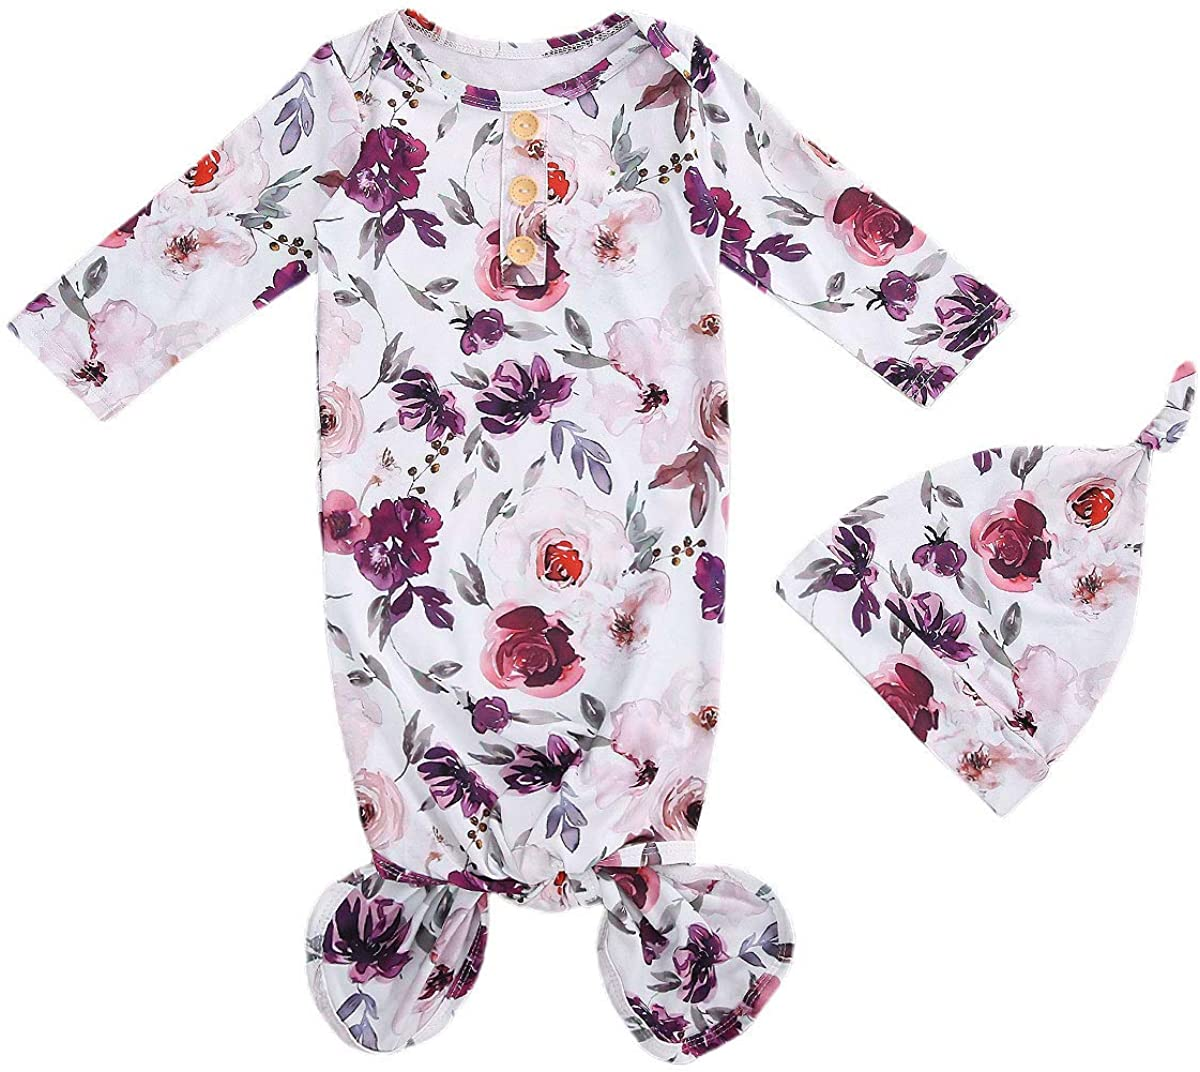 Newborn Baby Boy specialty shop Indianapolis Mall Girl Nightgown Set B Sleeve Infants Long Floral